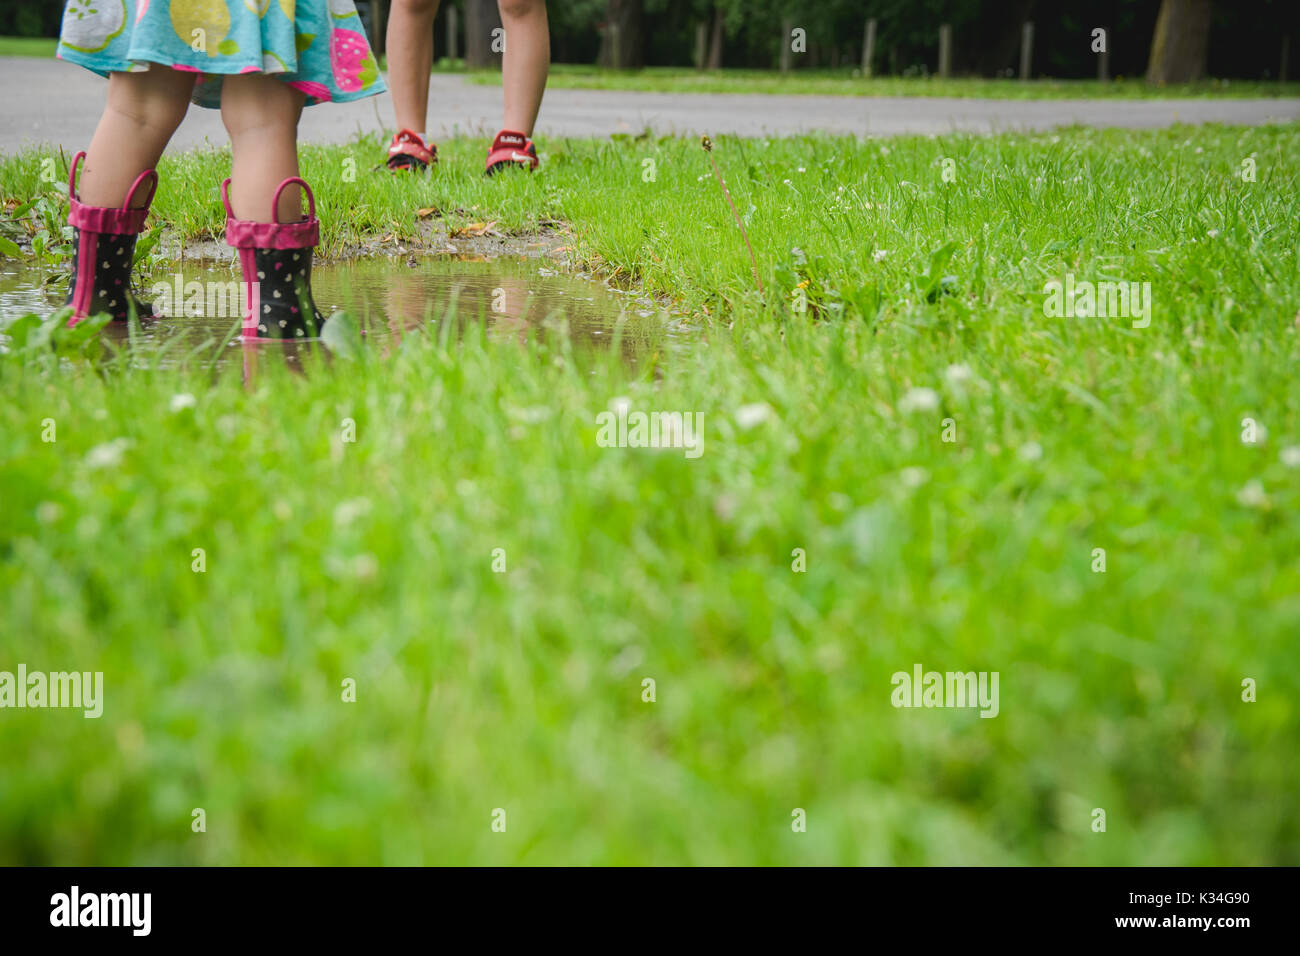 Children stand in a mud puddle wearing rain boots and with feet only pictured. - Stock Image